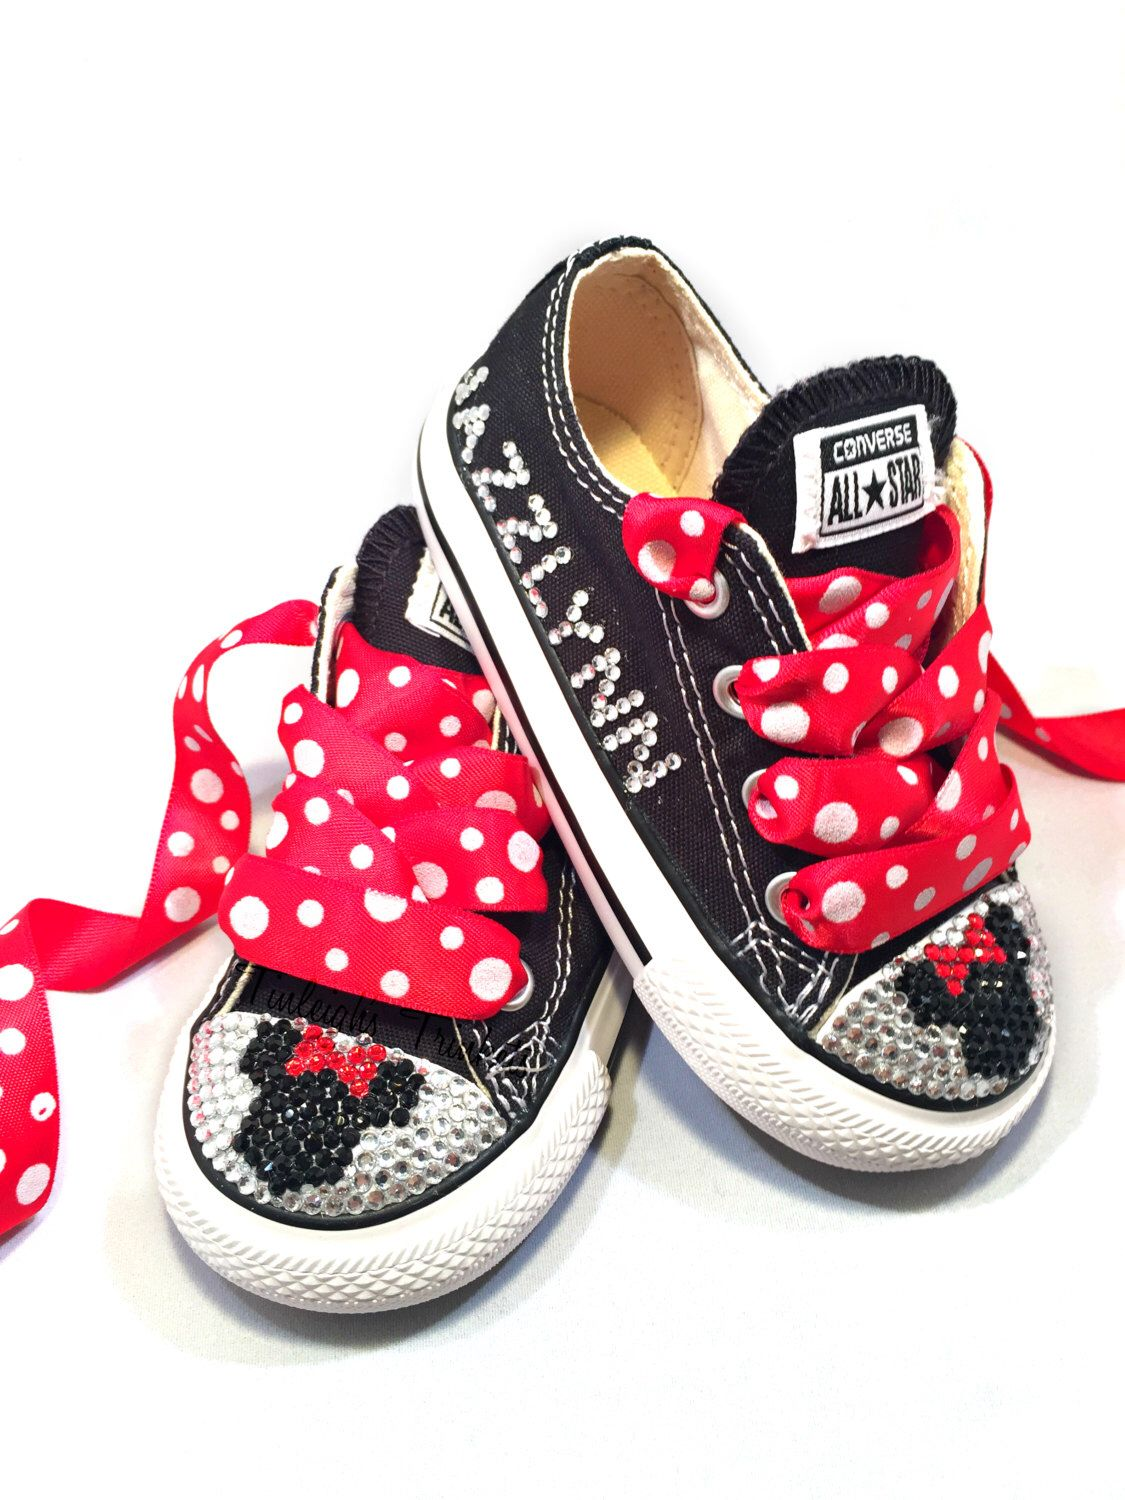 edde7cb6ccf4 Minnie Mouse Toddler Converse Bling Shoes